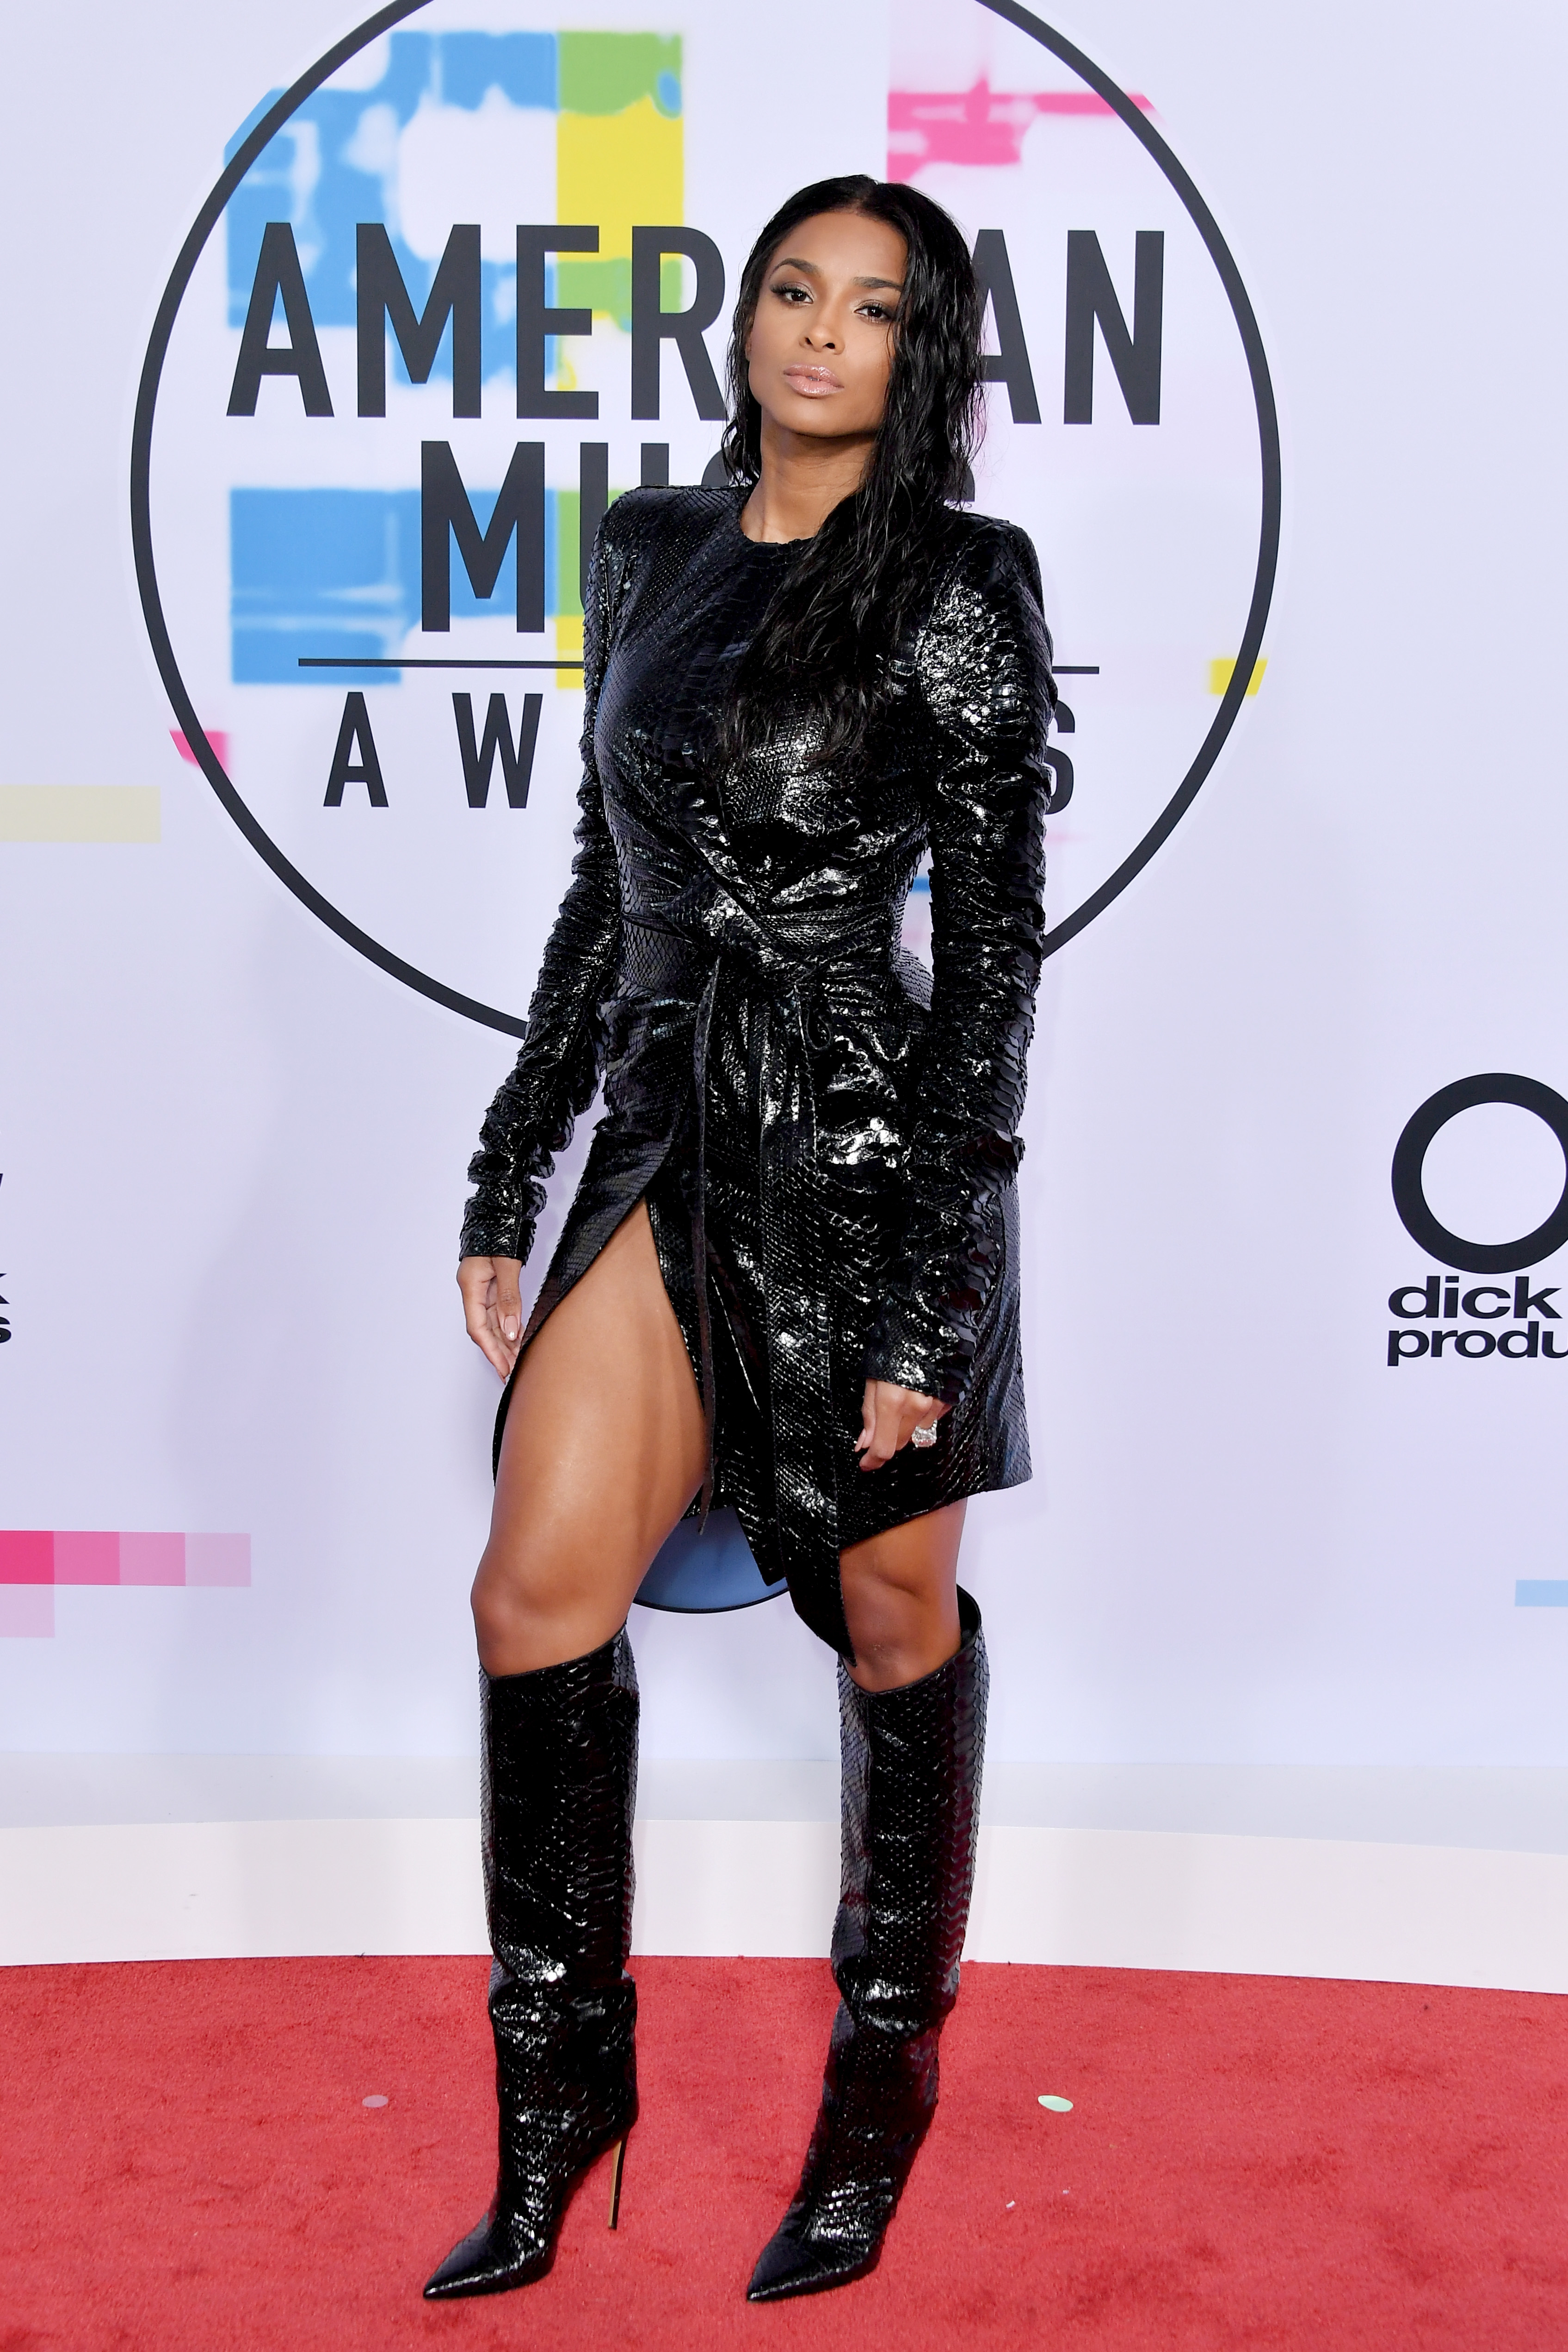 Ciara attends the American Music Awards at the Microsoft Theater in Los Angeles on Nov. 19, 2017.